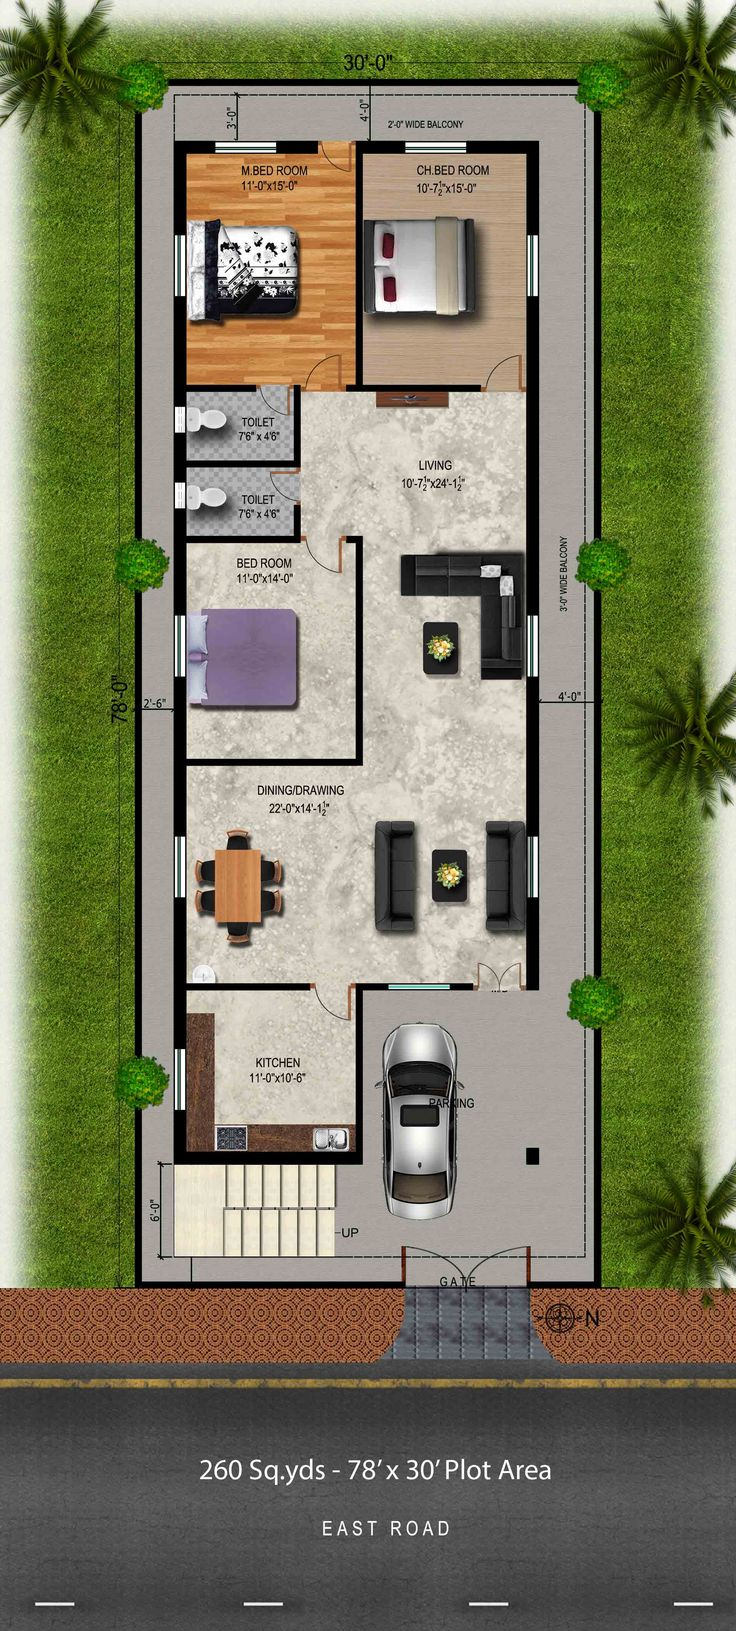 260 Sq Yds 30x78 Sq Ft East Face House 3bhk Floor Plan